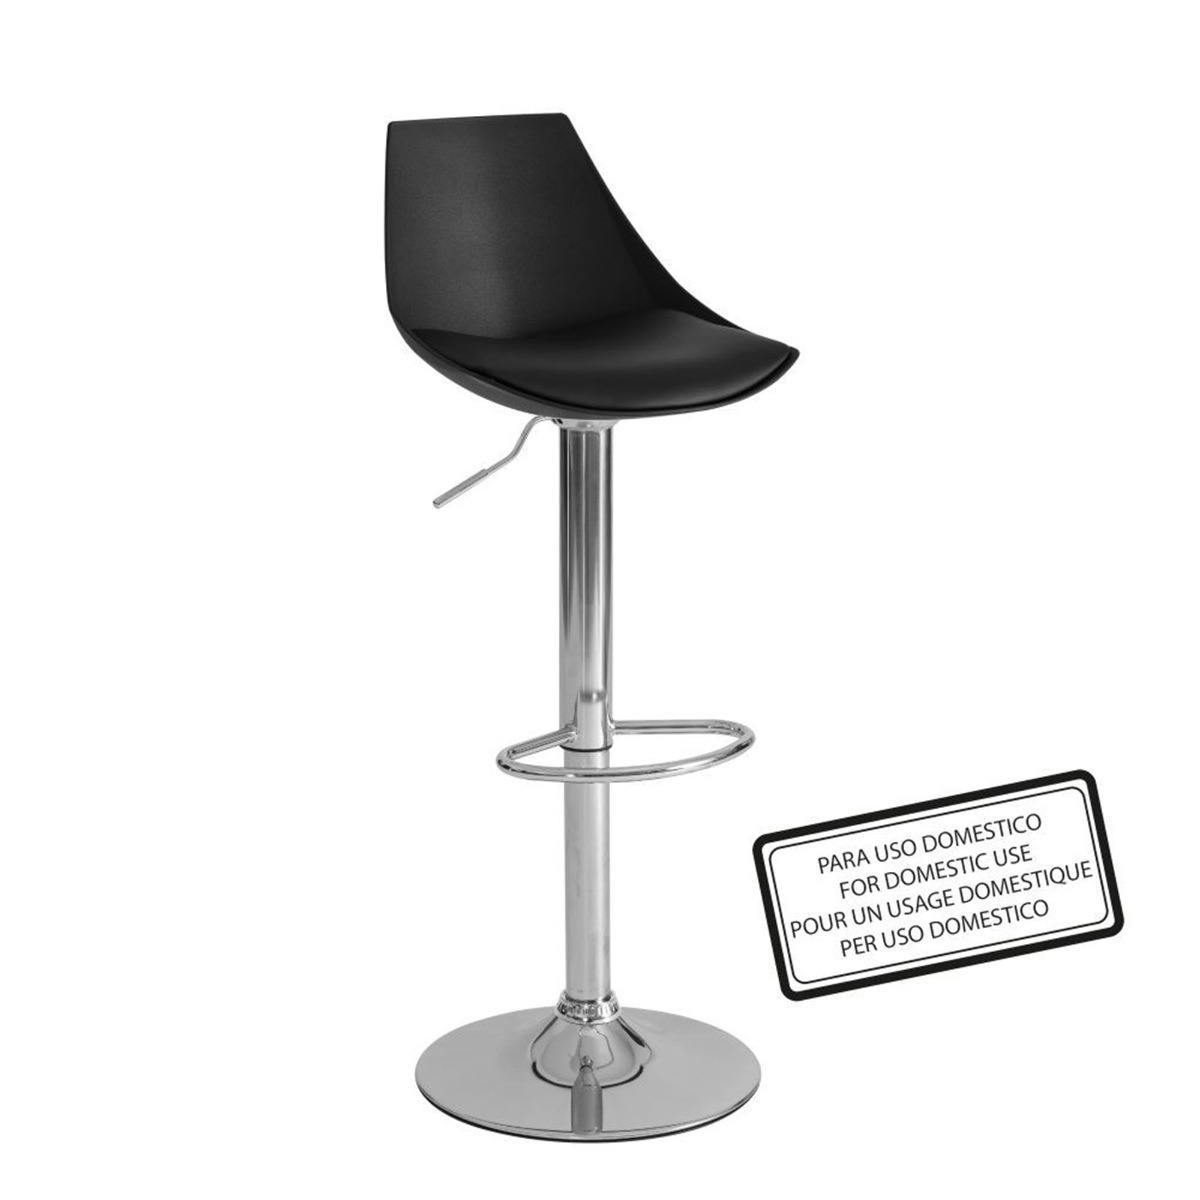 Silla alta para bar o banco de cocina color negro for Sillas altas para barra